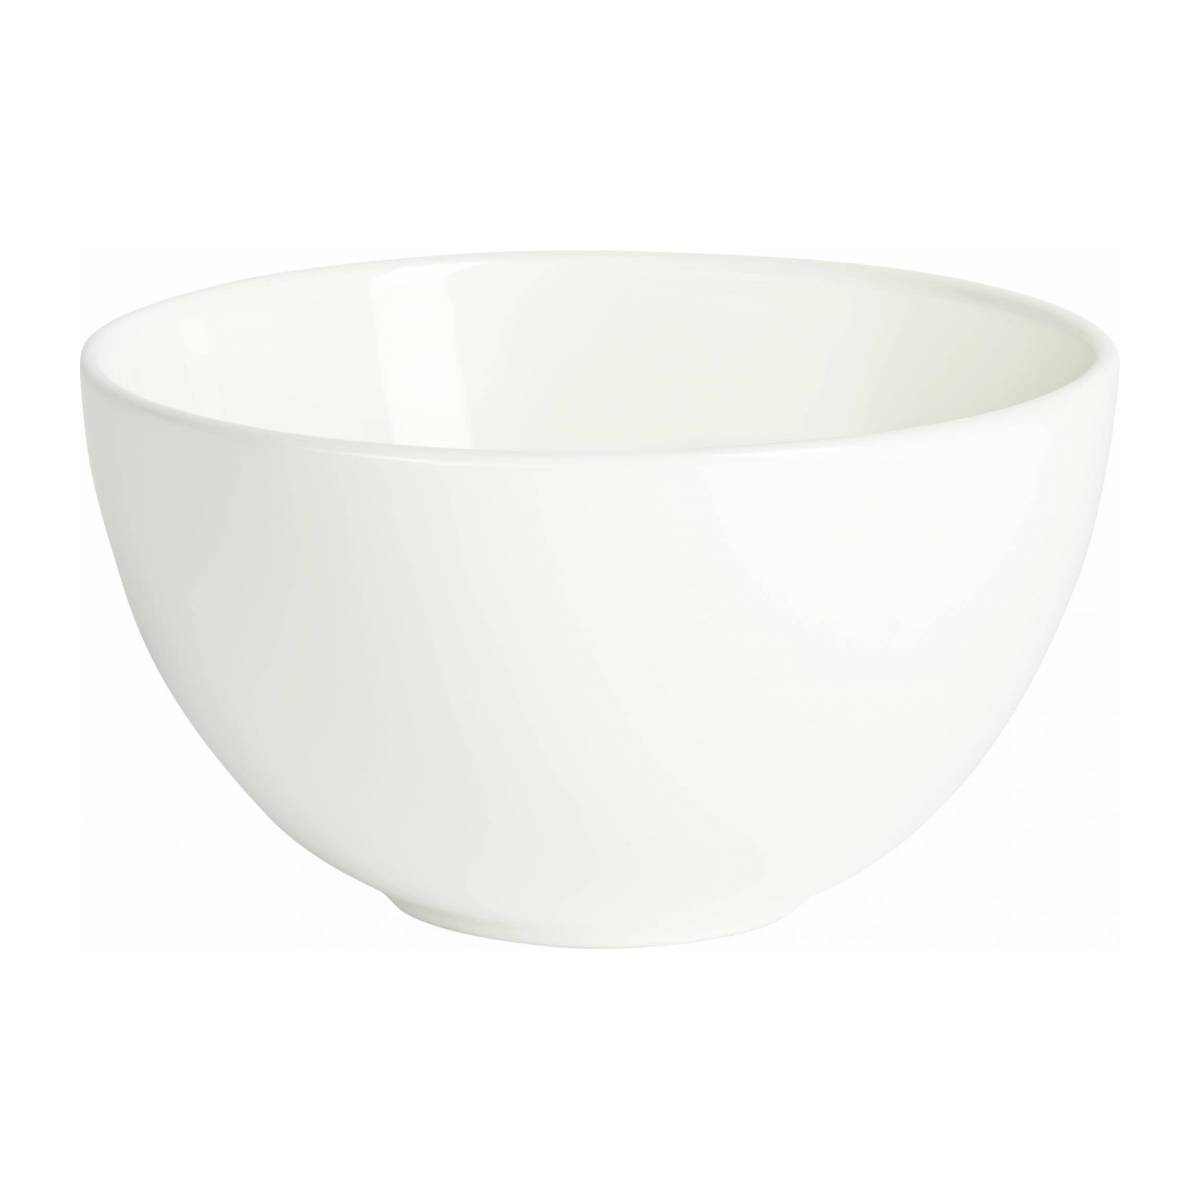 Small cereal bowl  n°1